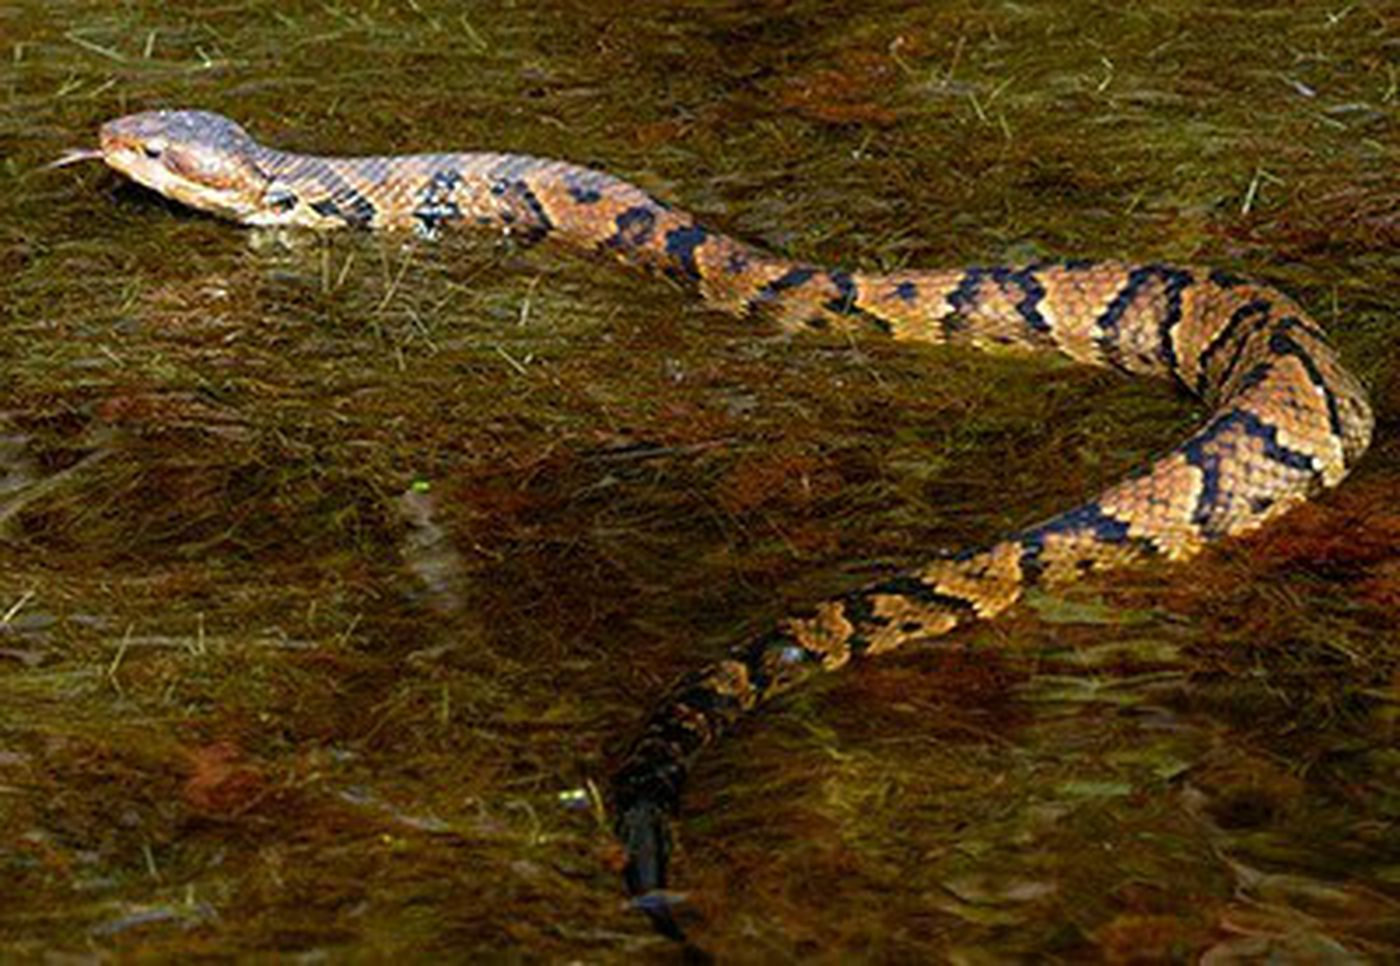 Snakes in Virginia: Meet 6 you'll mostly likely see this season